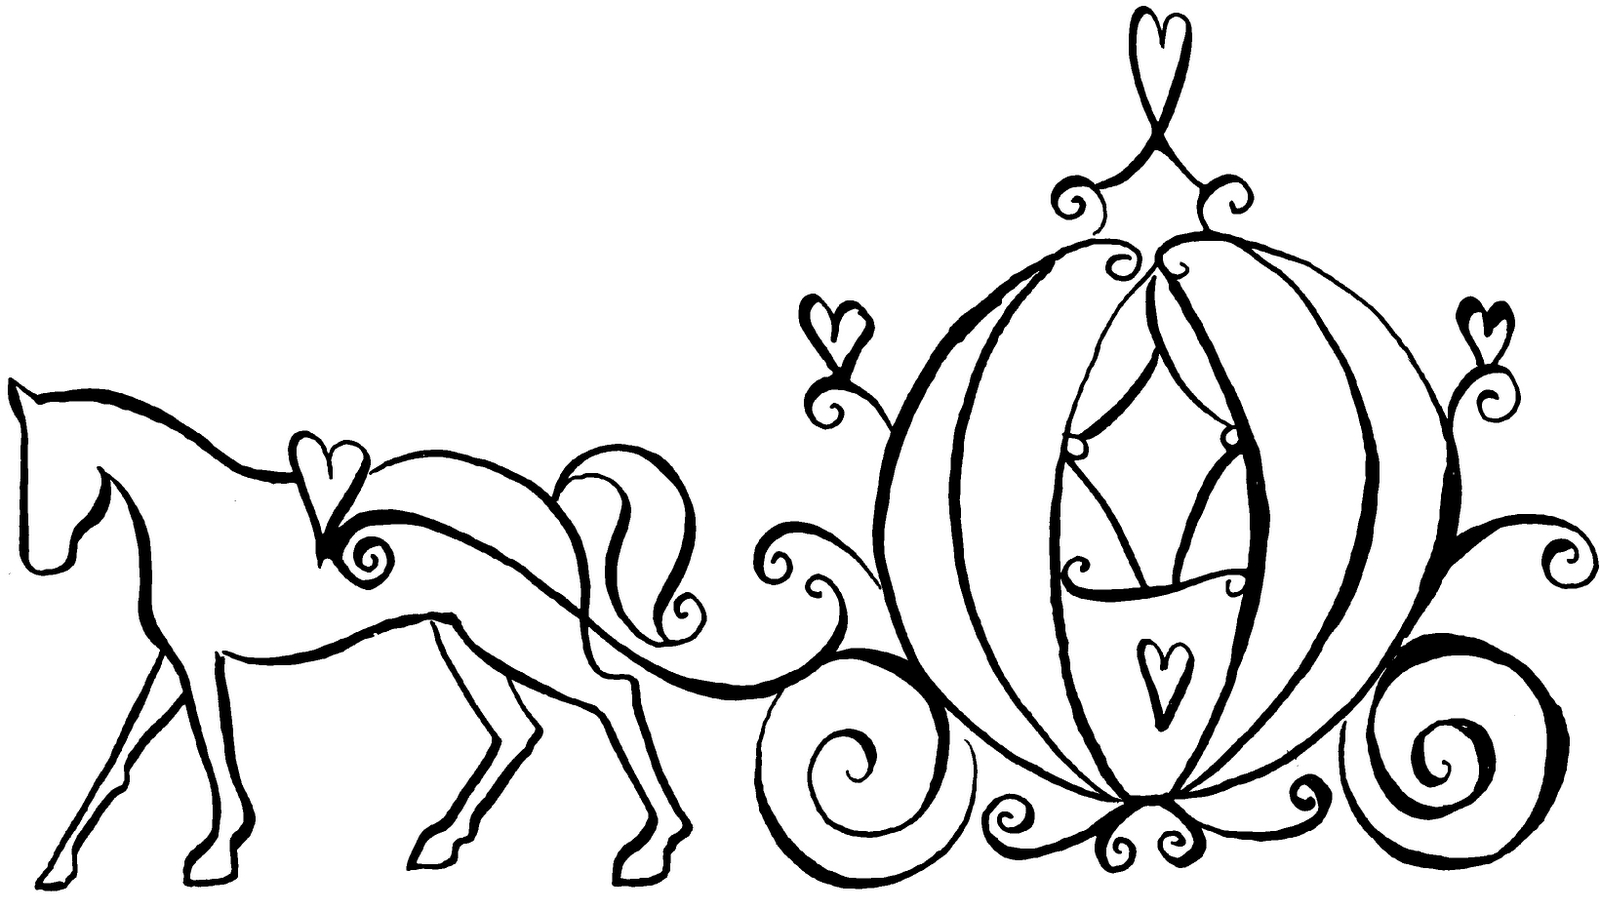 horse and carriage coloring pages horse and carriage transportation coloring pages coloring and pages horse carriage